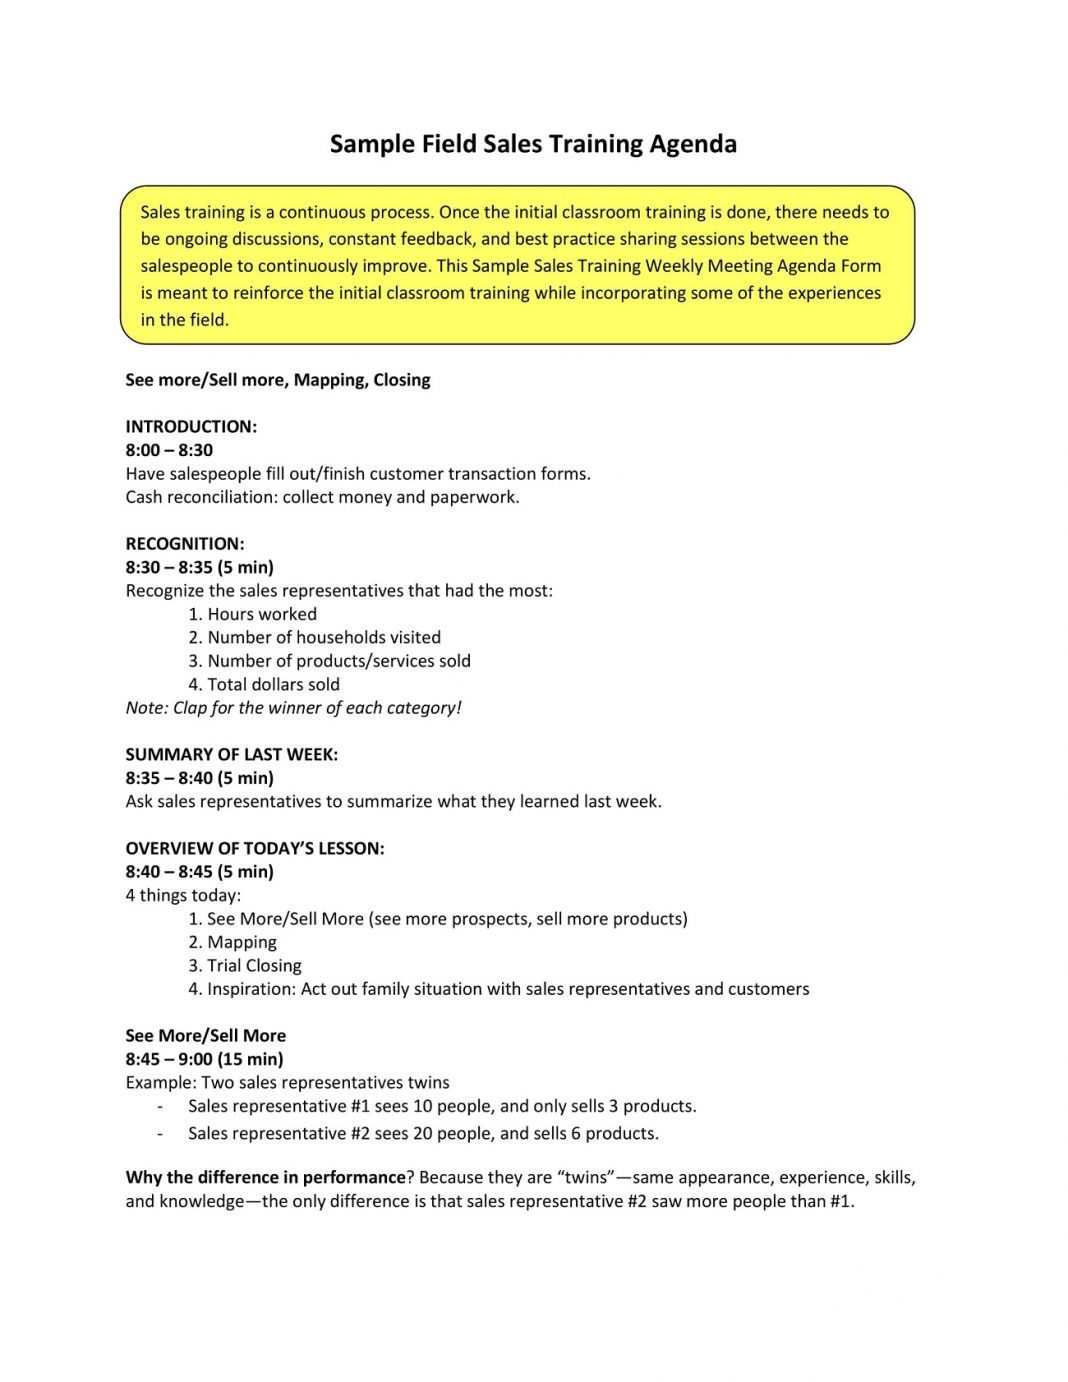 Field Sales Training Agenda Sample PDF Template Microsoft Word Ppt How To Create A Pdf Layout  Large